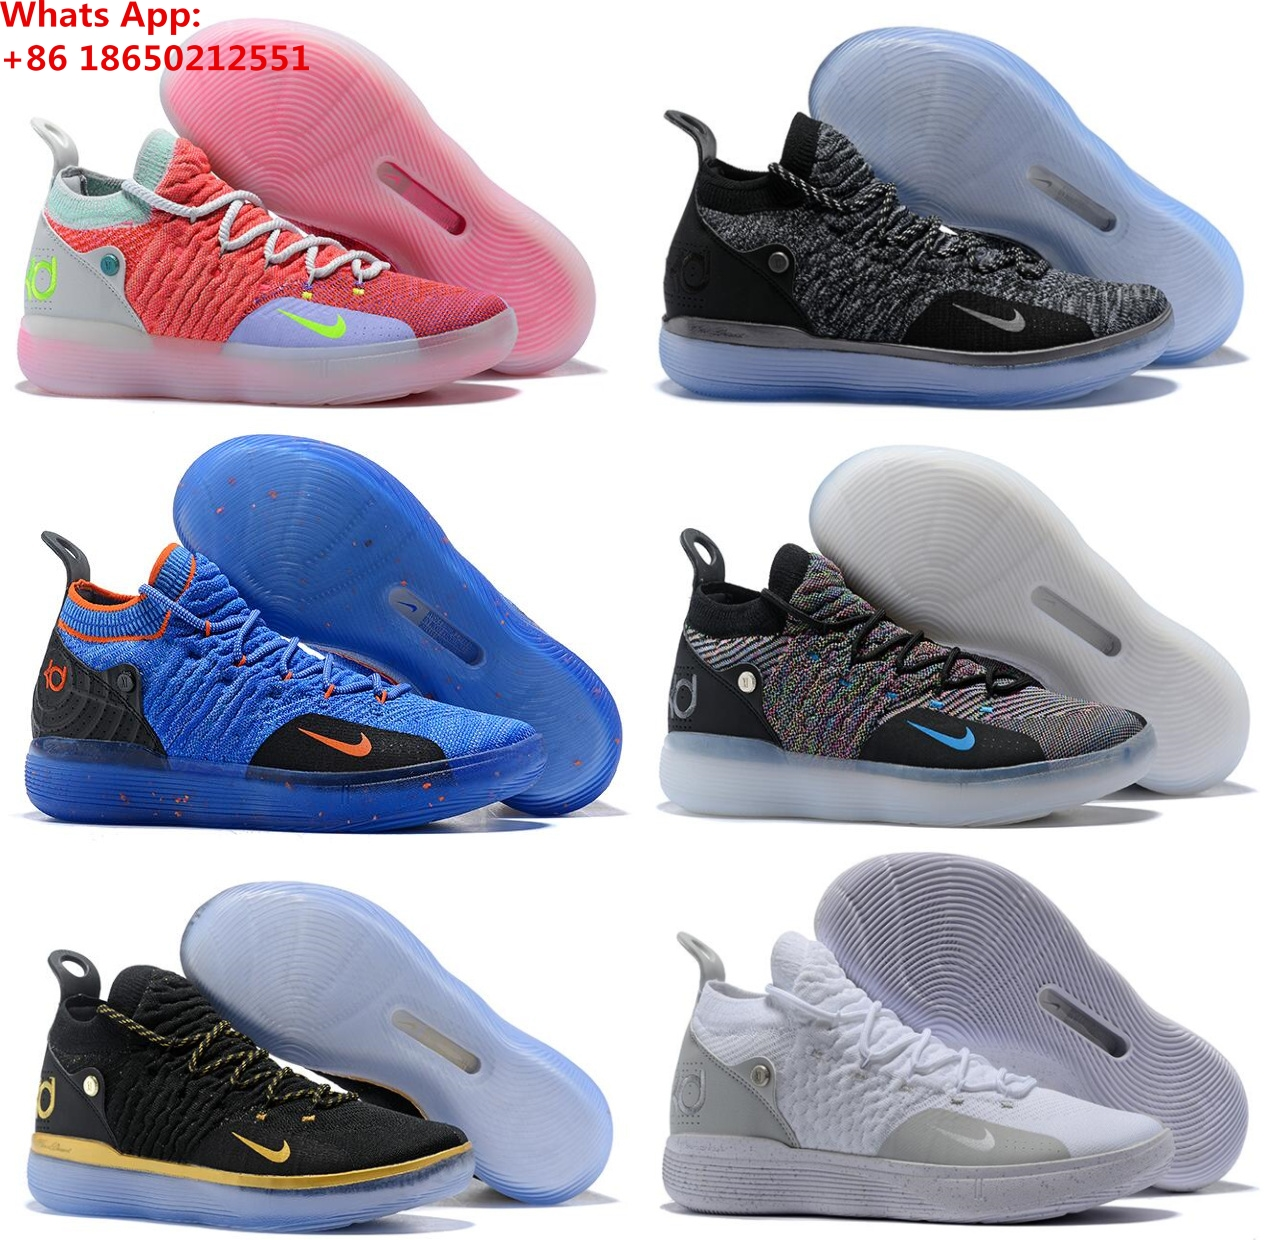 online store 1136a cb325 Zoom KD 11 EP XI EYBL Peach Jam Hot Punch Kevin Durant Men KD11 Basketball  Shoes